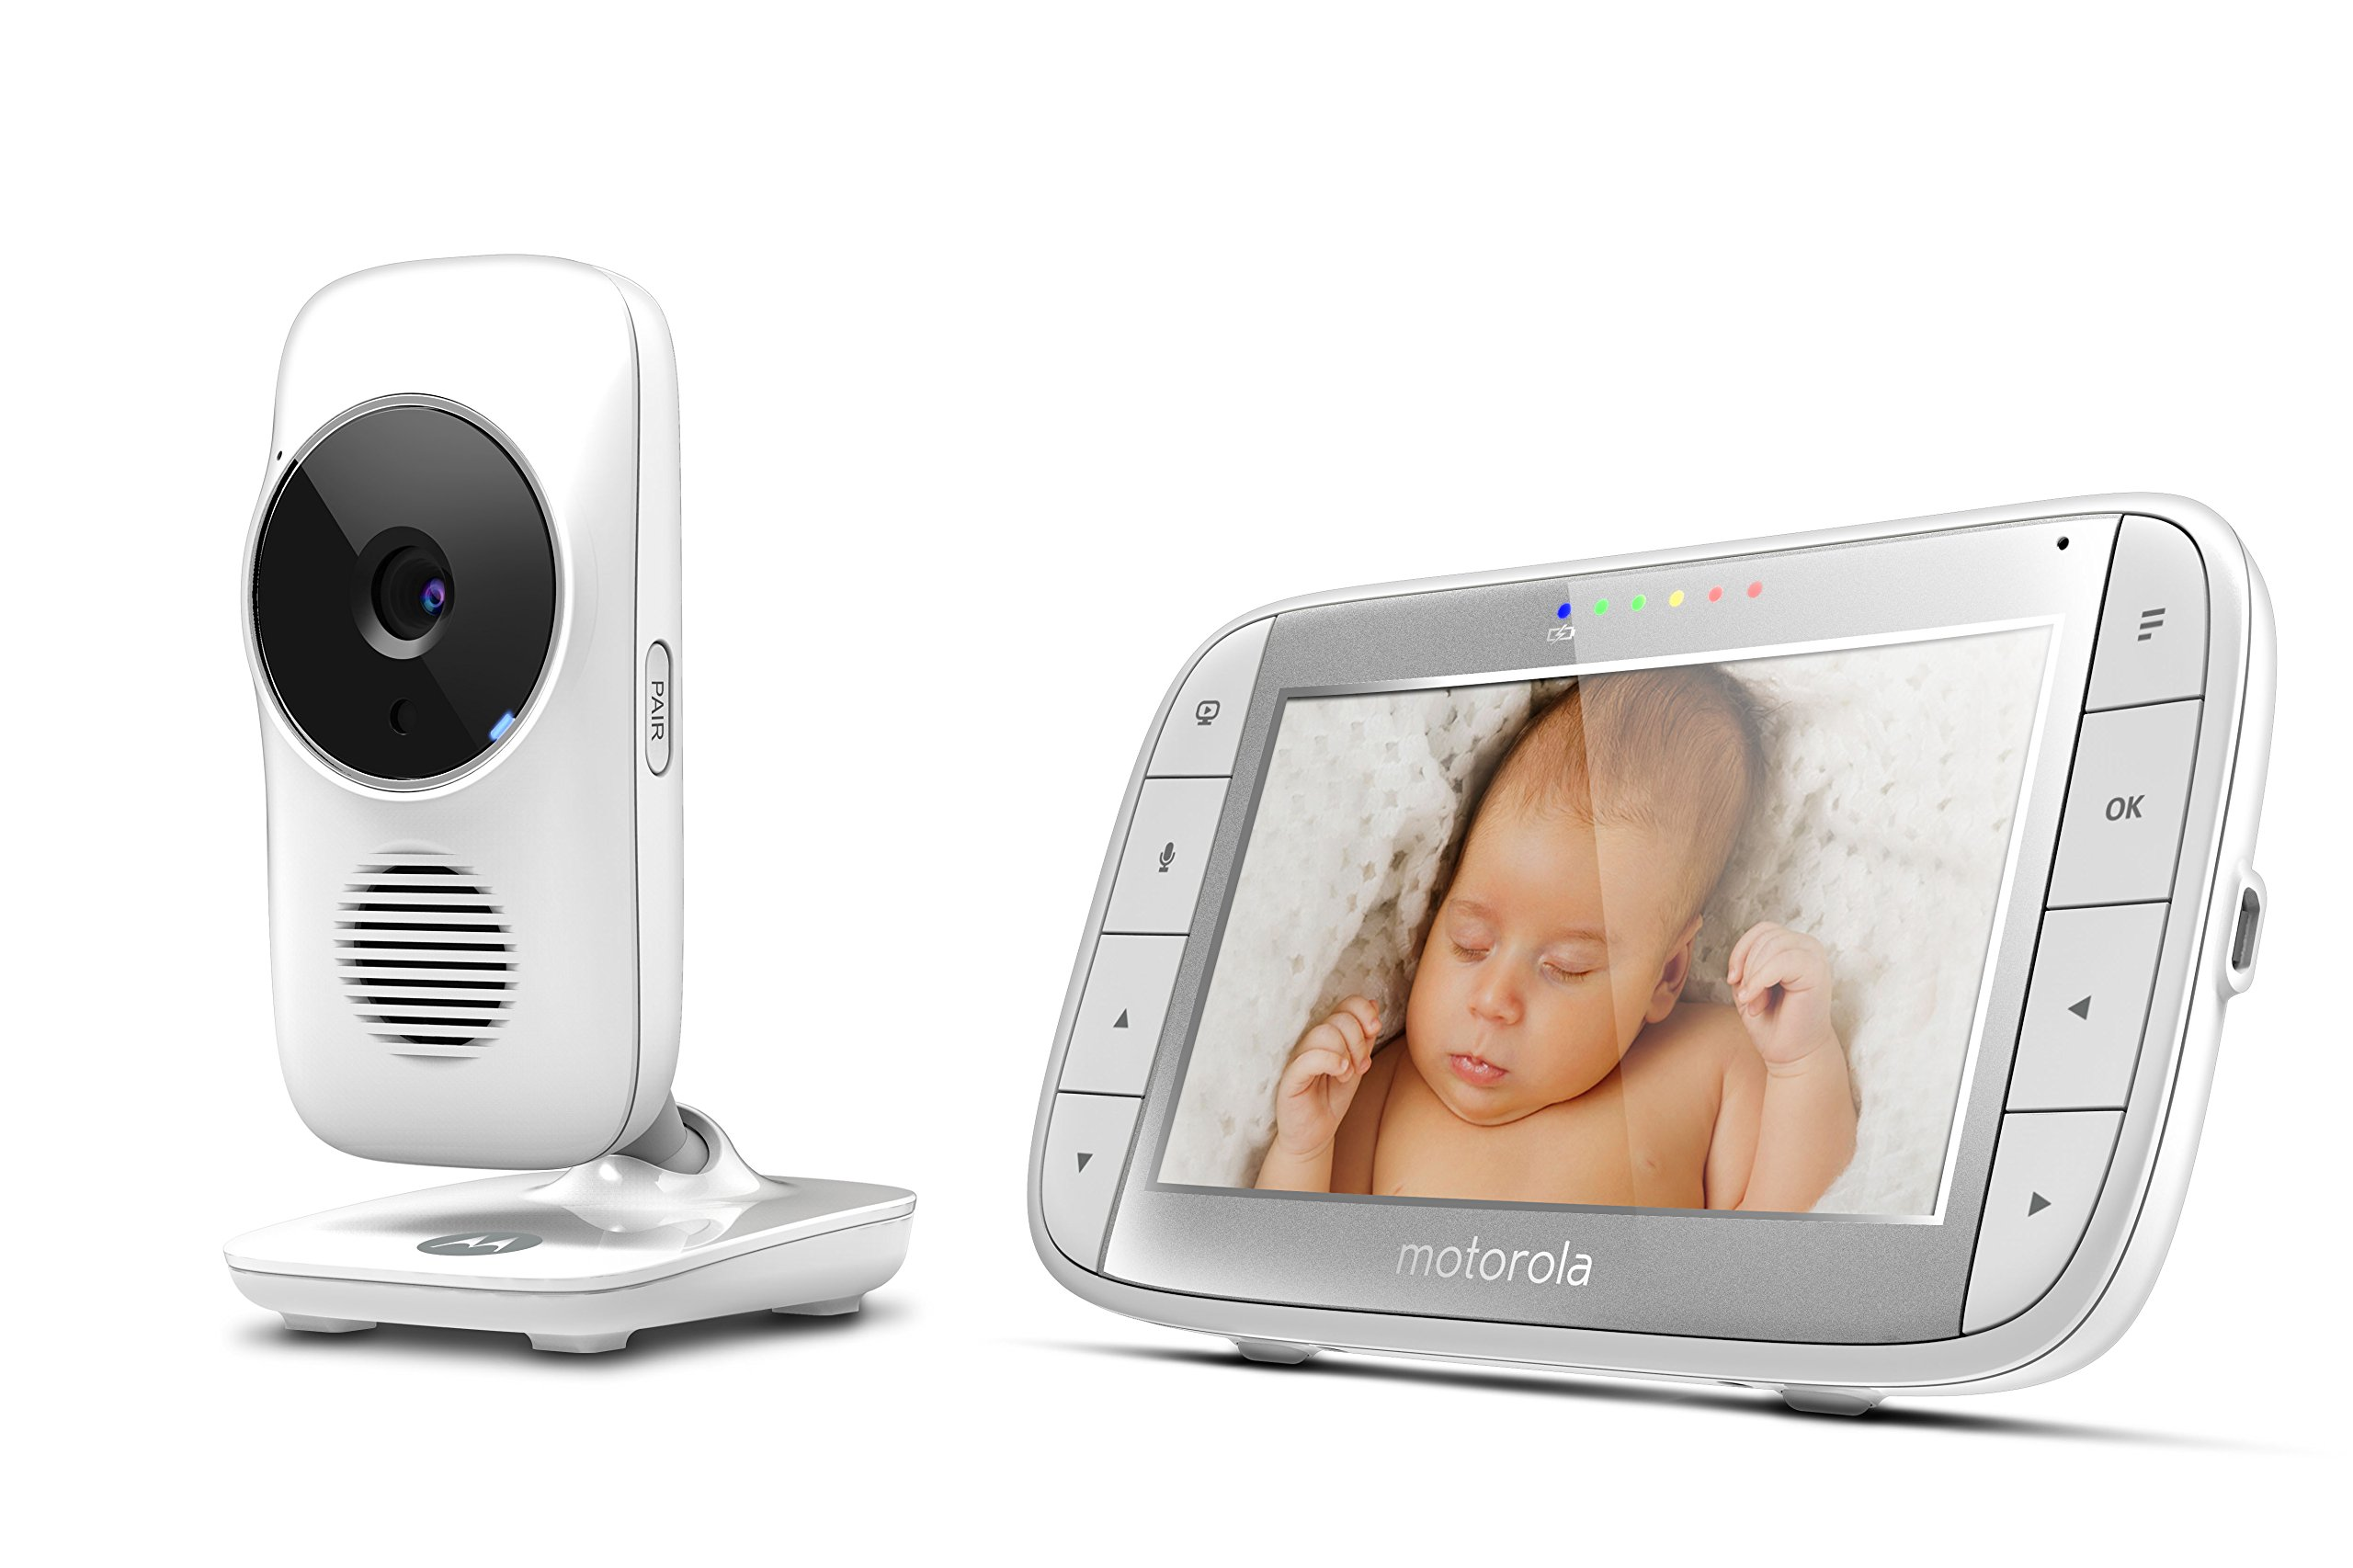 "Motorola MBP48 5 inch Video Baby Monitor Motorola Baby 5"" color display two-way communication Infrared night vision Room temperature monitoring 2"